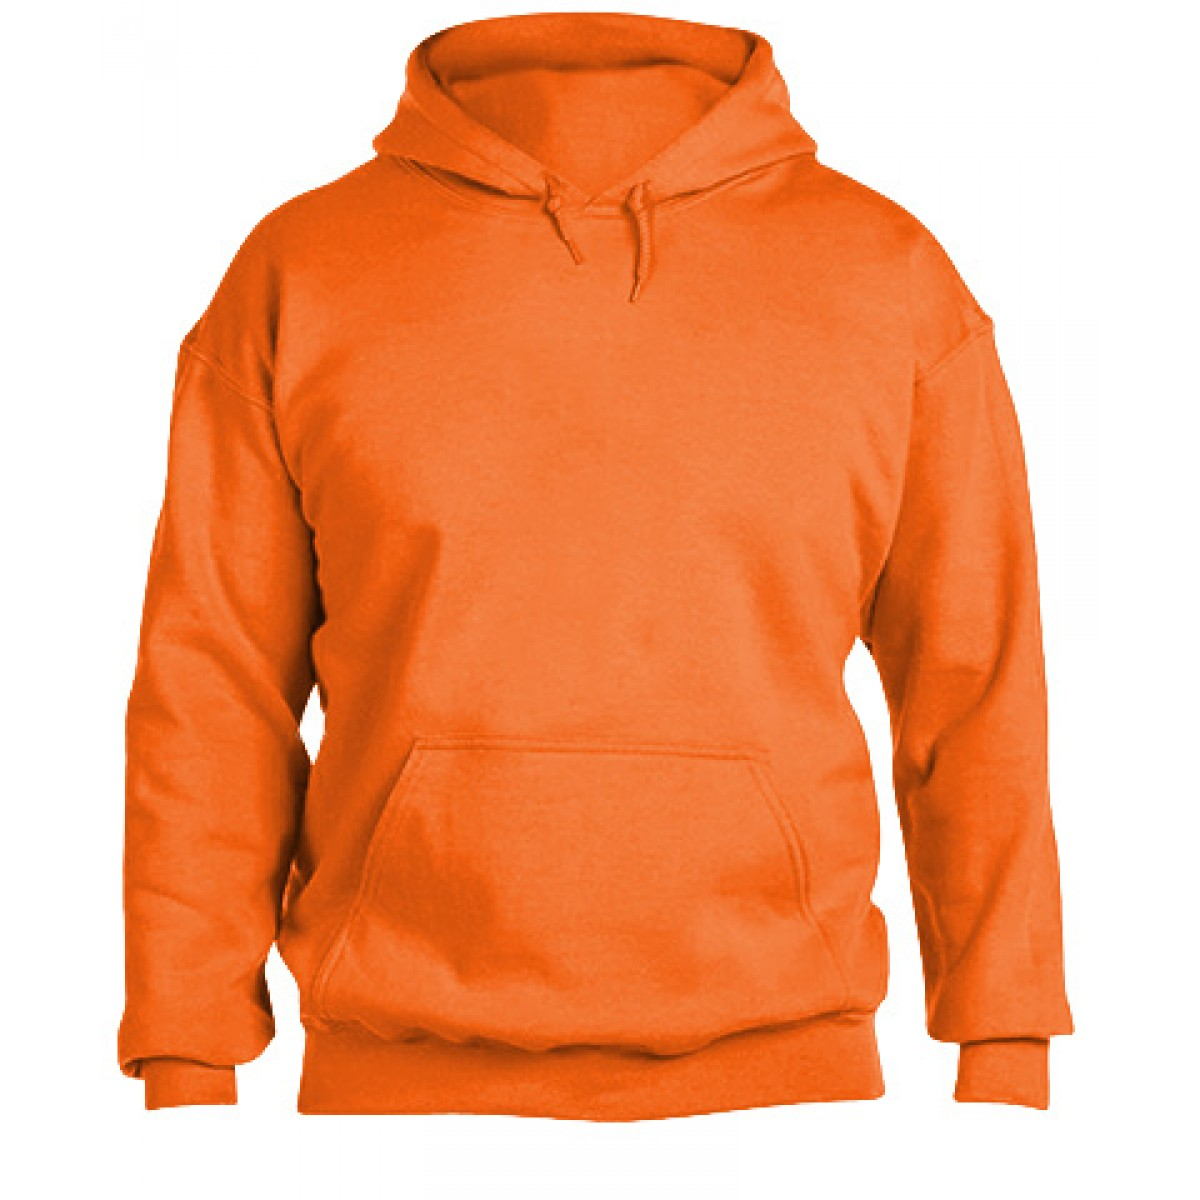 Hooded Sweatshirt 50/50 Heavy Blend-Safety Orange-YS